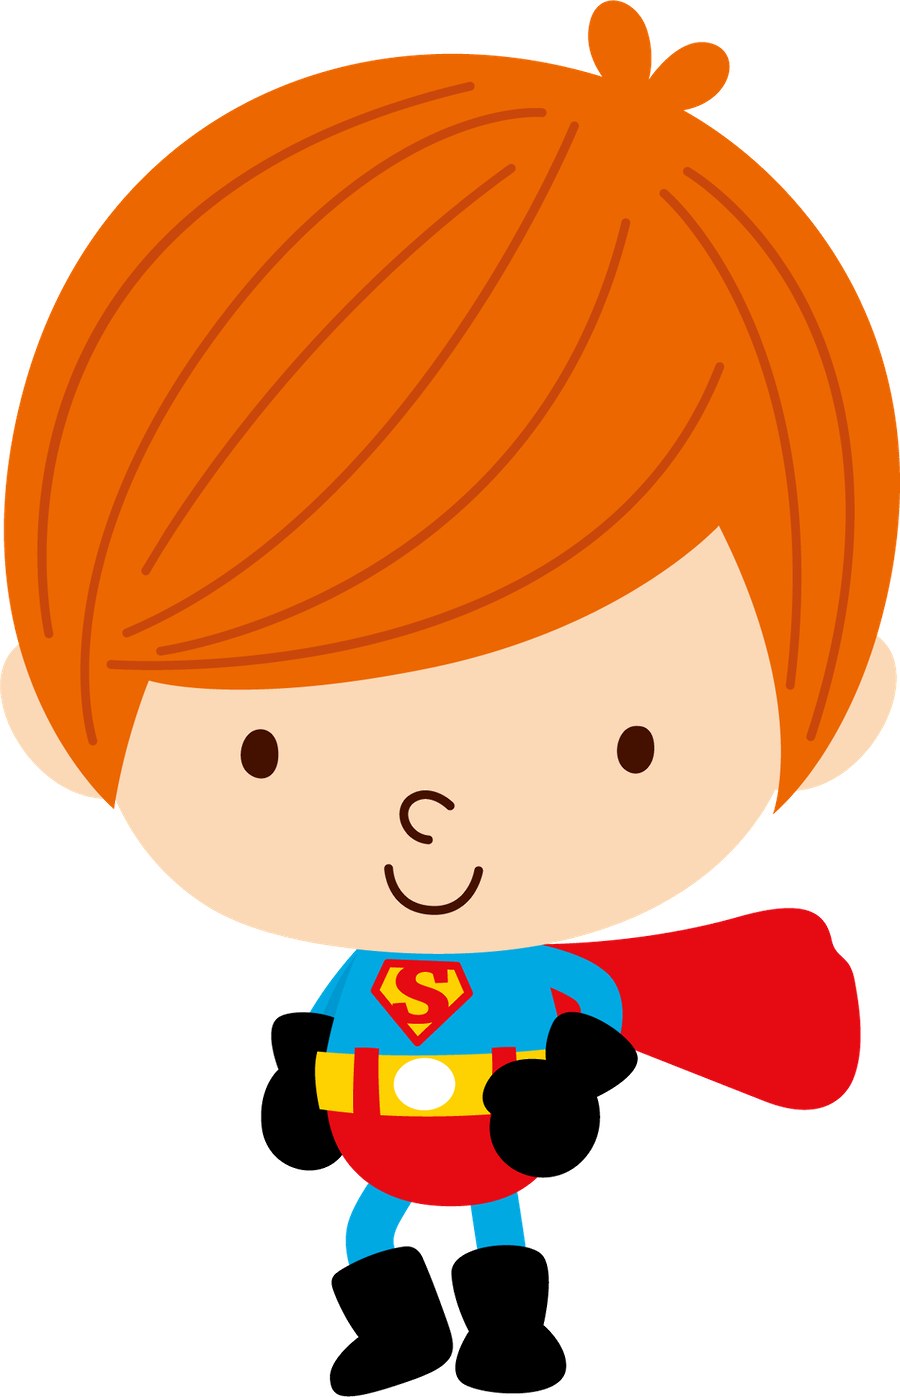 Superman baby clipart image black and white stock Super Heróis - Minus | alreadyclipart - super hero's | Pinterest ... image black and white stock